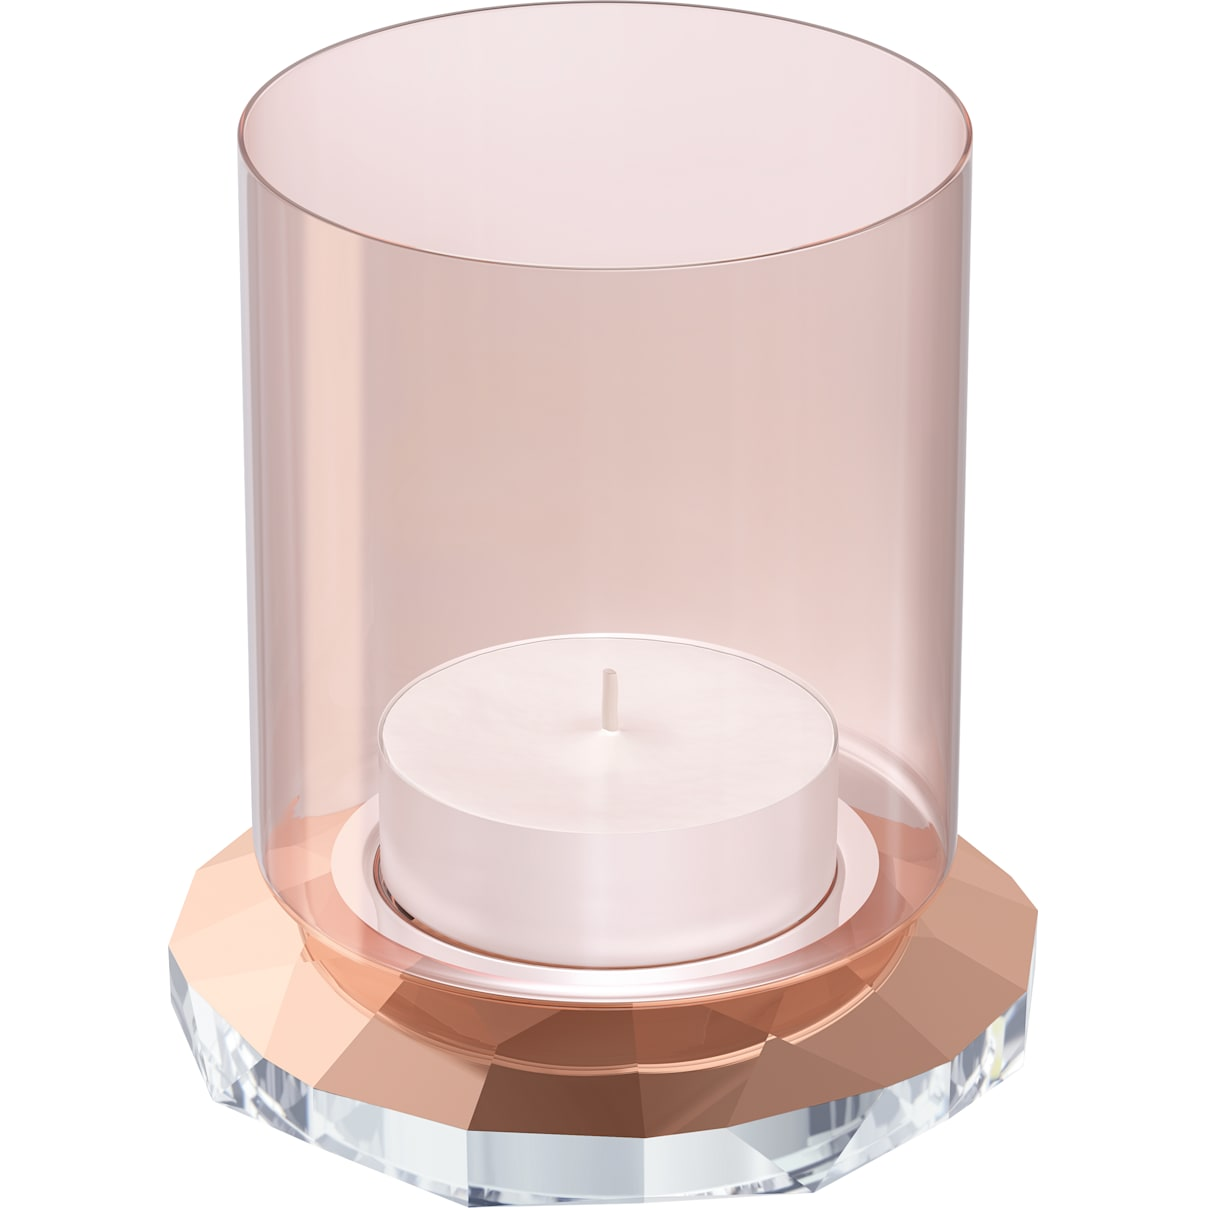 Swarovski Allure Tea Light, Rose Gold ToneSwarovski Allure Tea Light, Rose Gold Tone